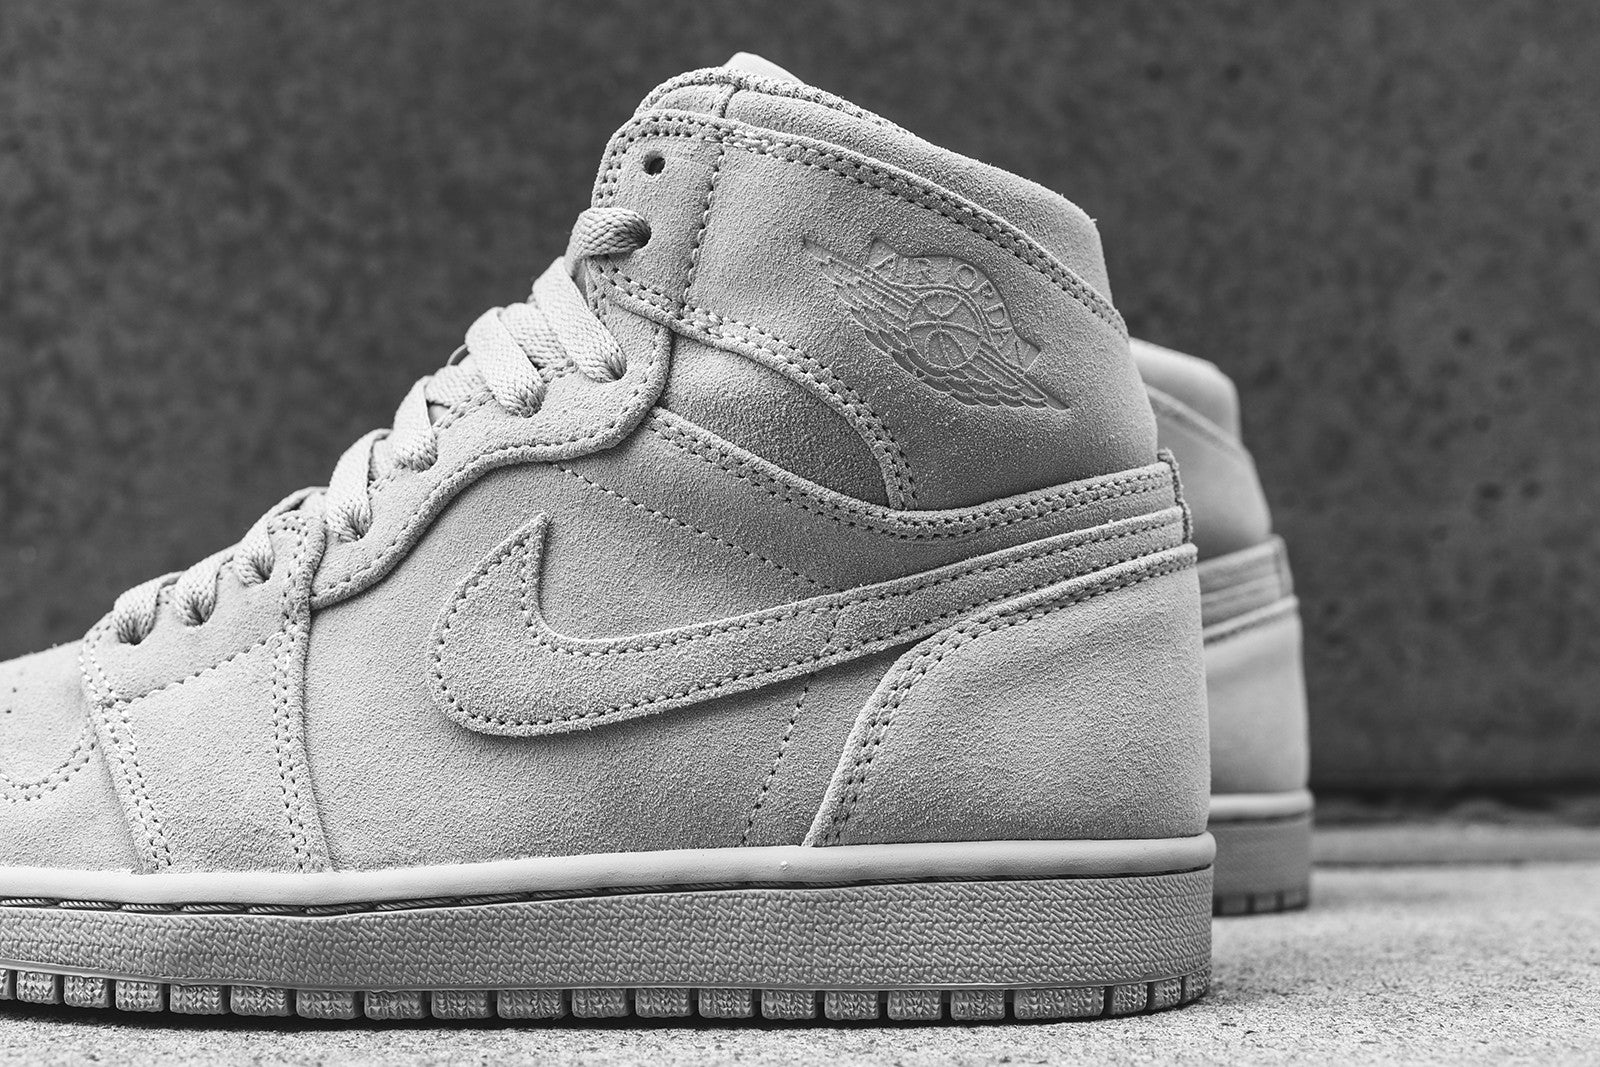 664281ab7bfe 1  2  3. Jordan Brand releases the Air Jordan 1 Retro High silhouette  executed in a Wolf Grey color ...